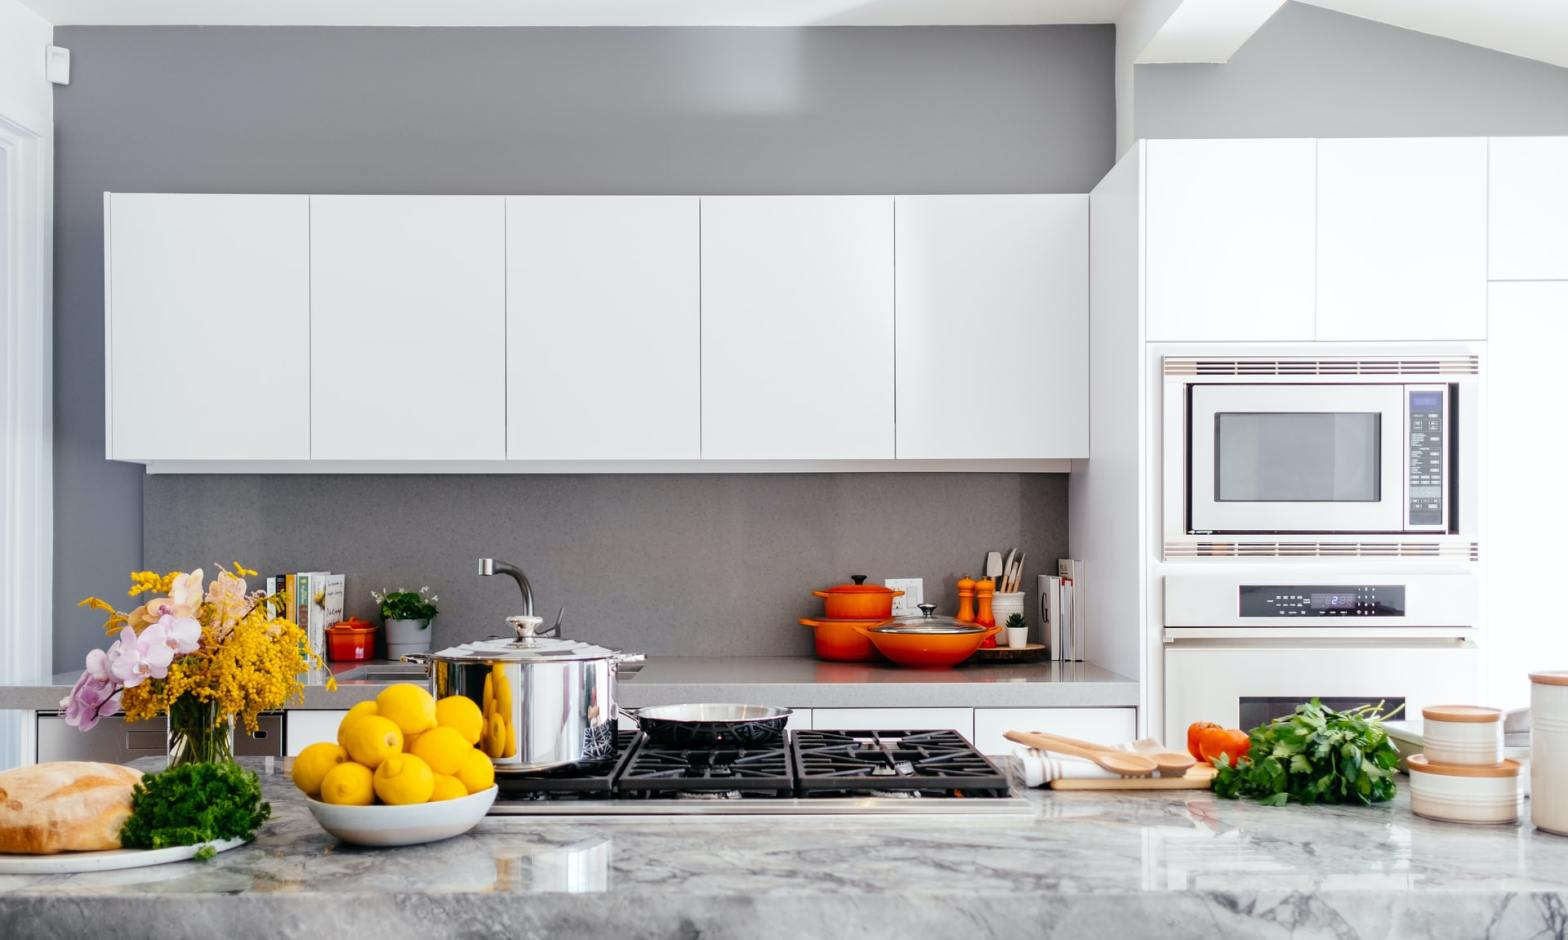 A well-equipped Shared kitchen space